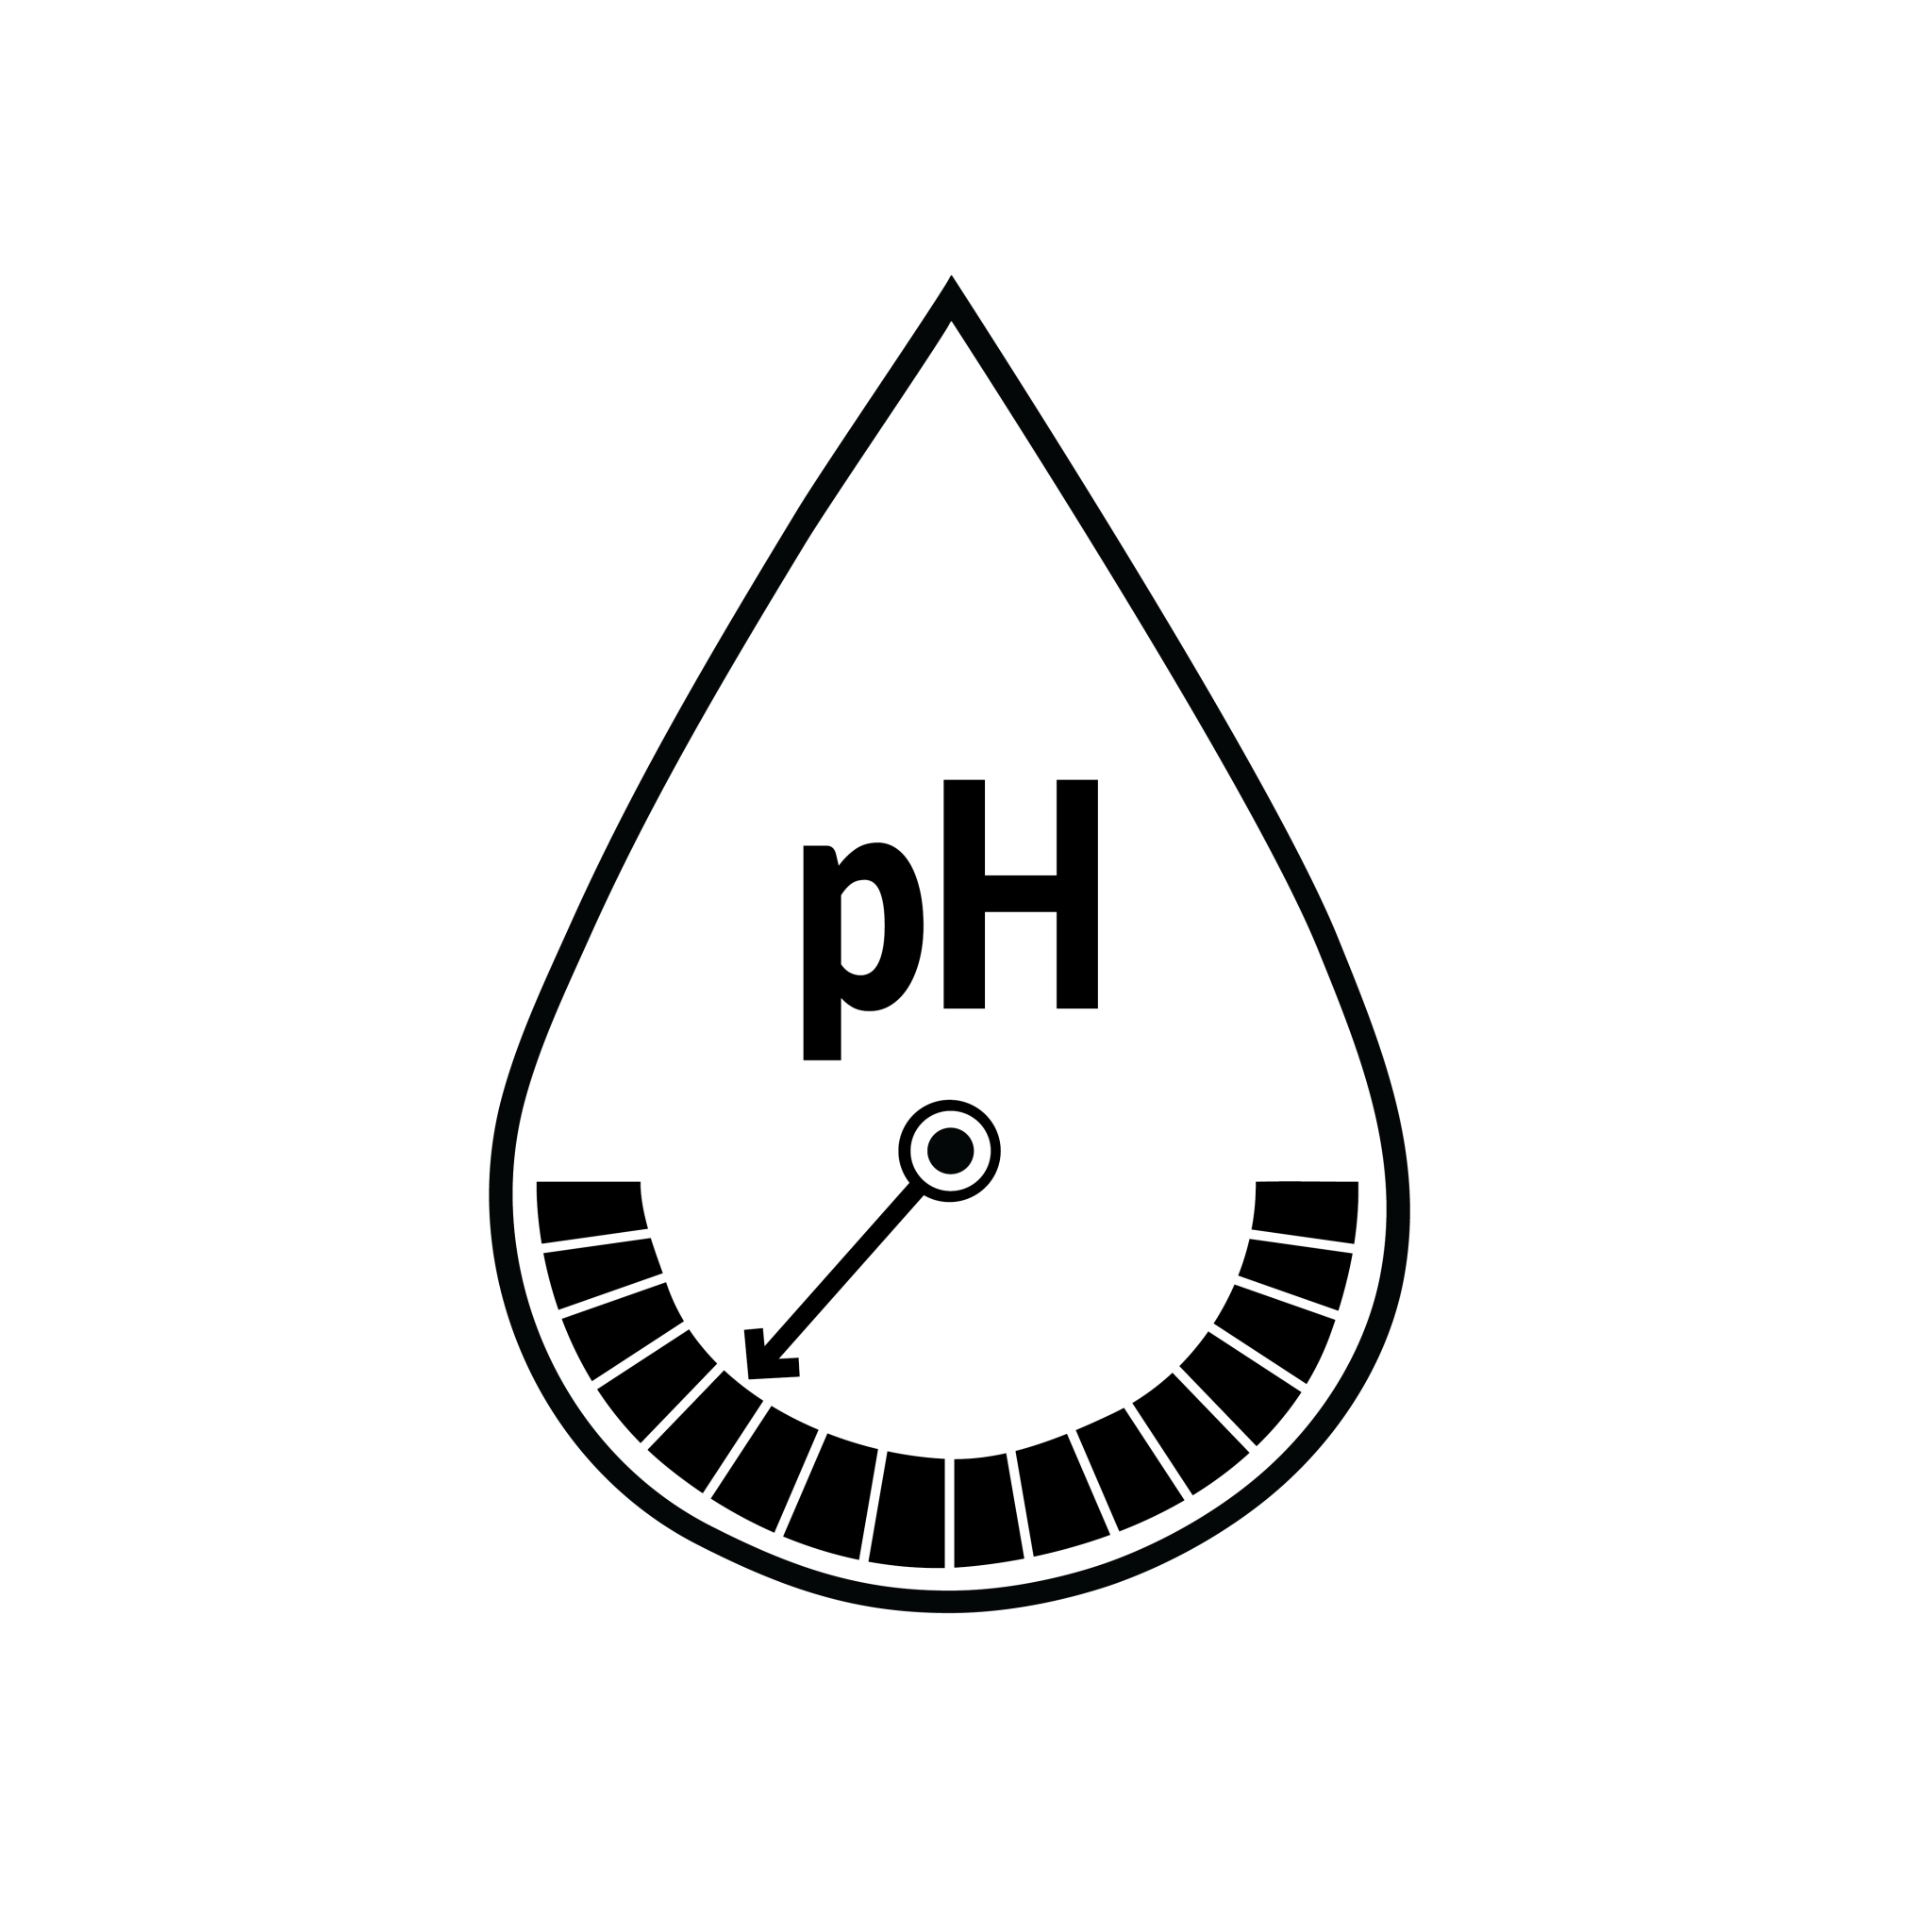 PH LEVEL ISSUES